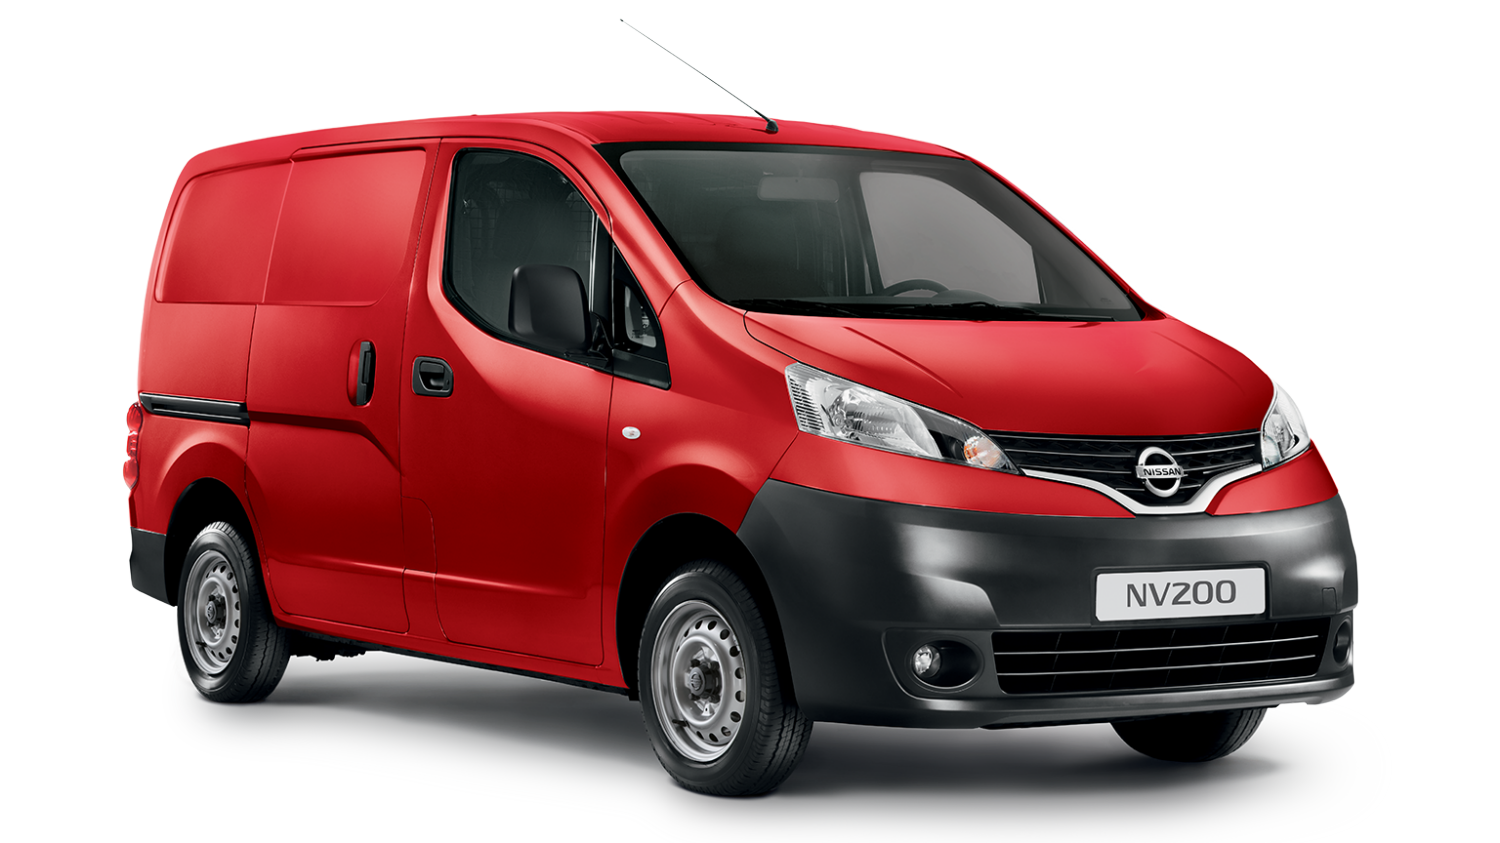 prix caract ristiques nissan nv200 nissan. Black Bedroom Furniture Sets. Home Design Ideas